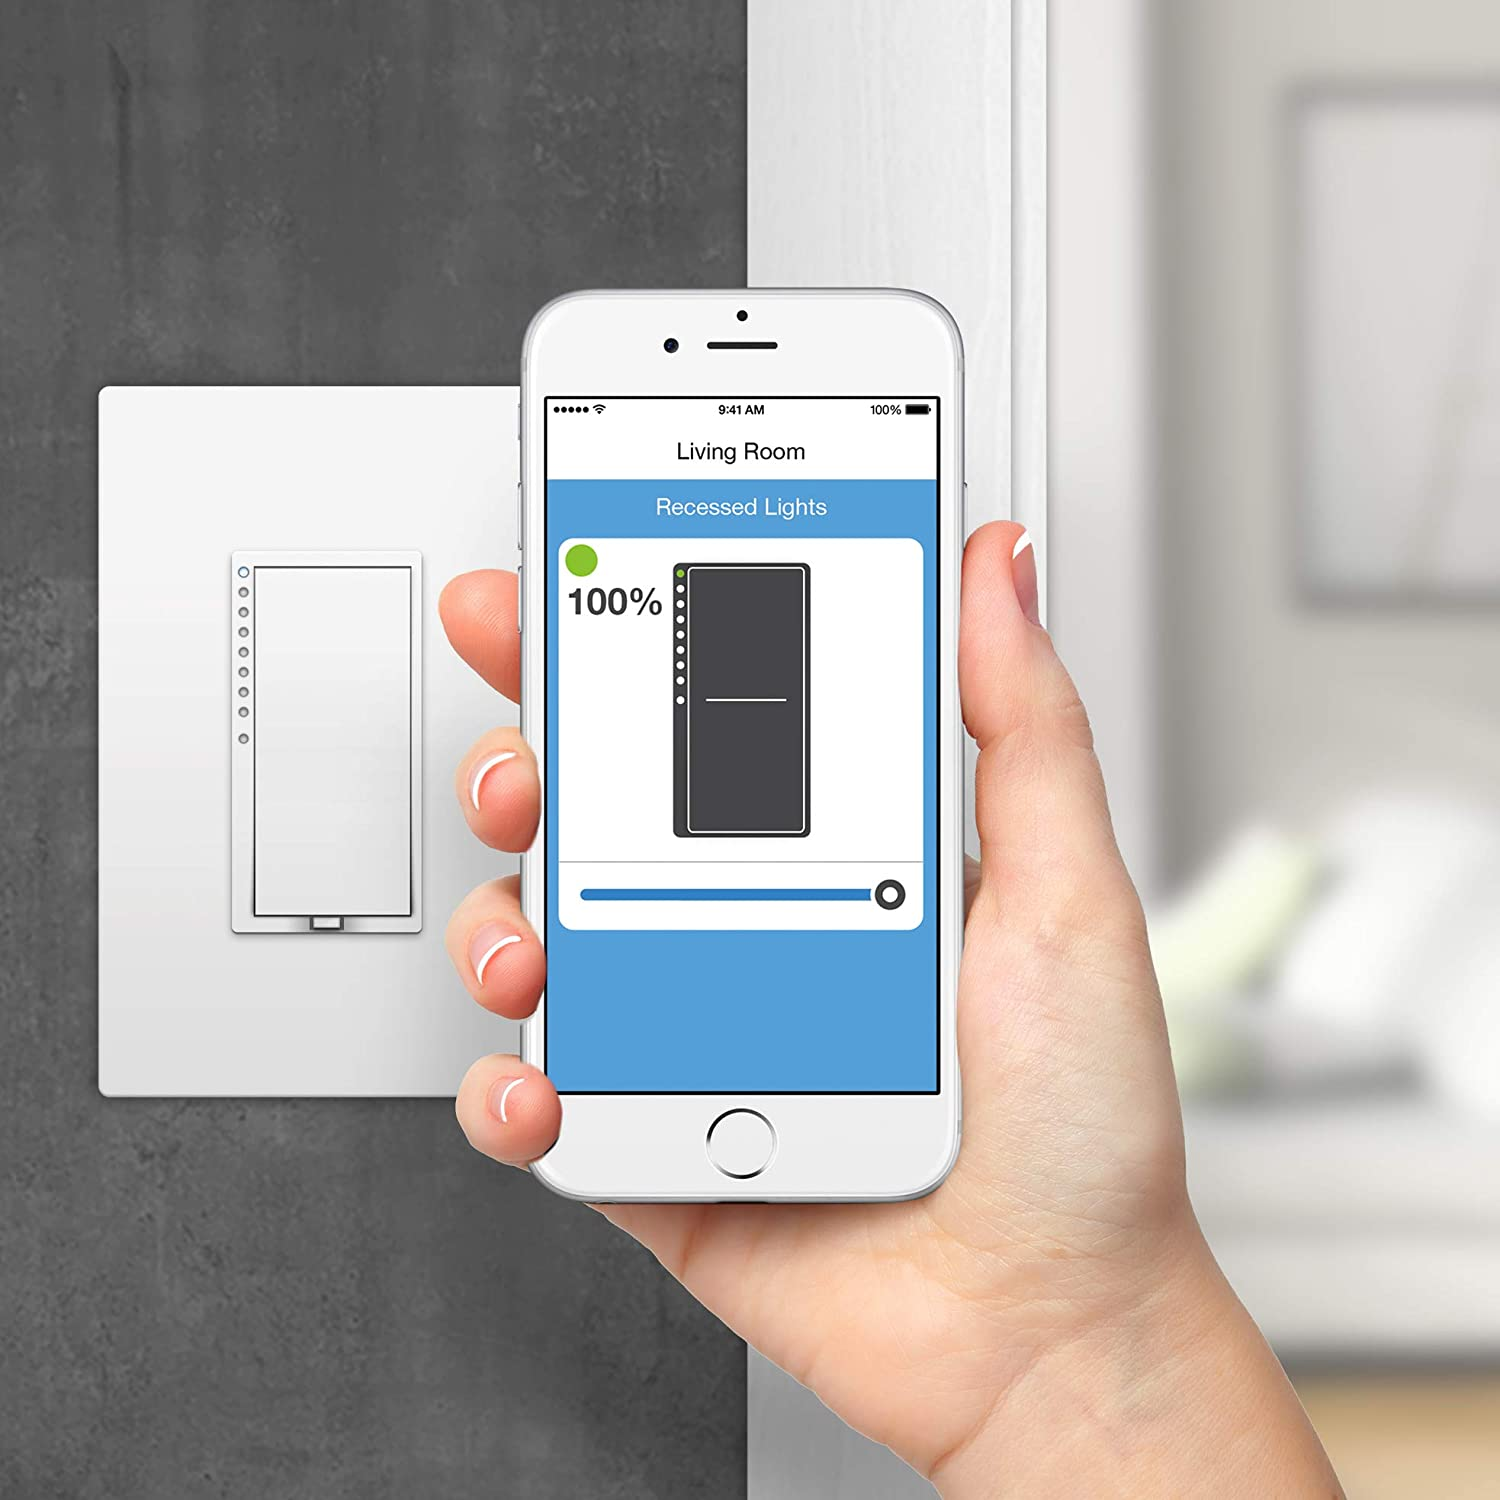 Top 10 Best Smart Home Products (2020 Reviews & Buying Guide) 8